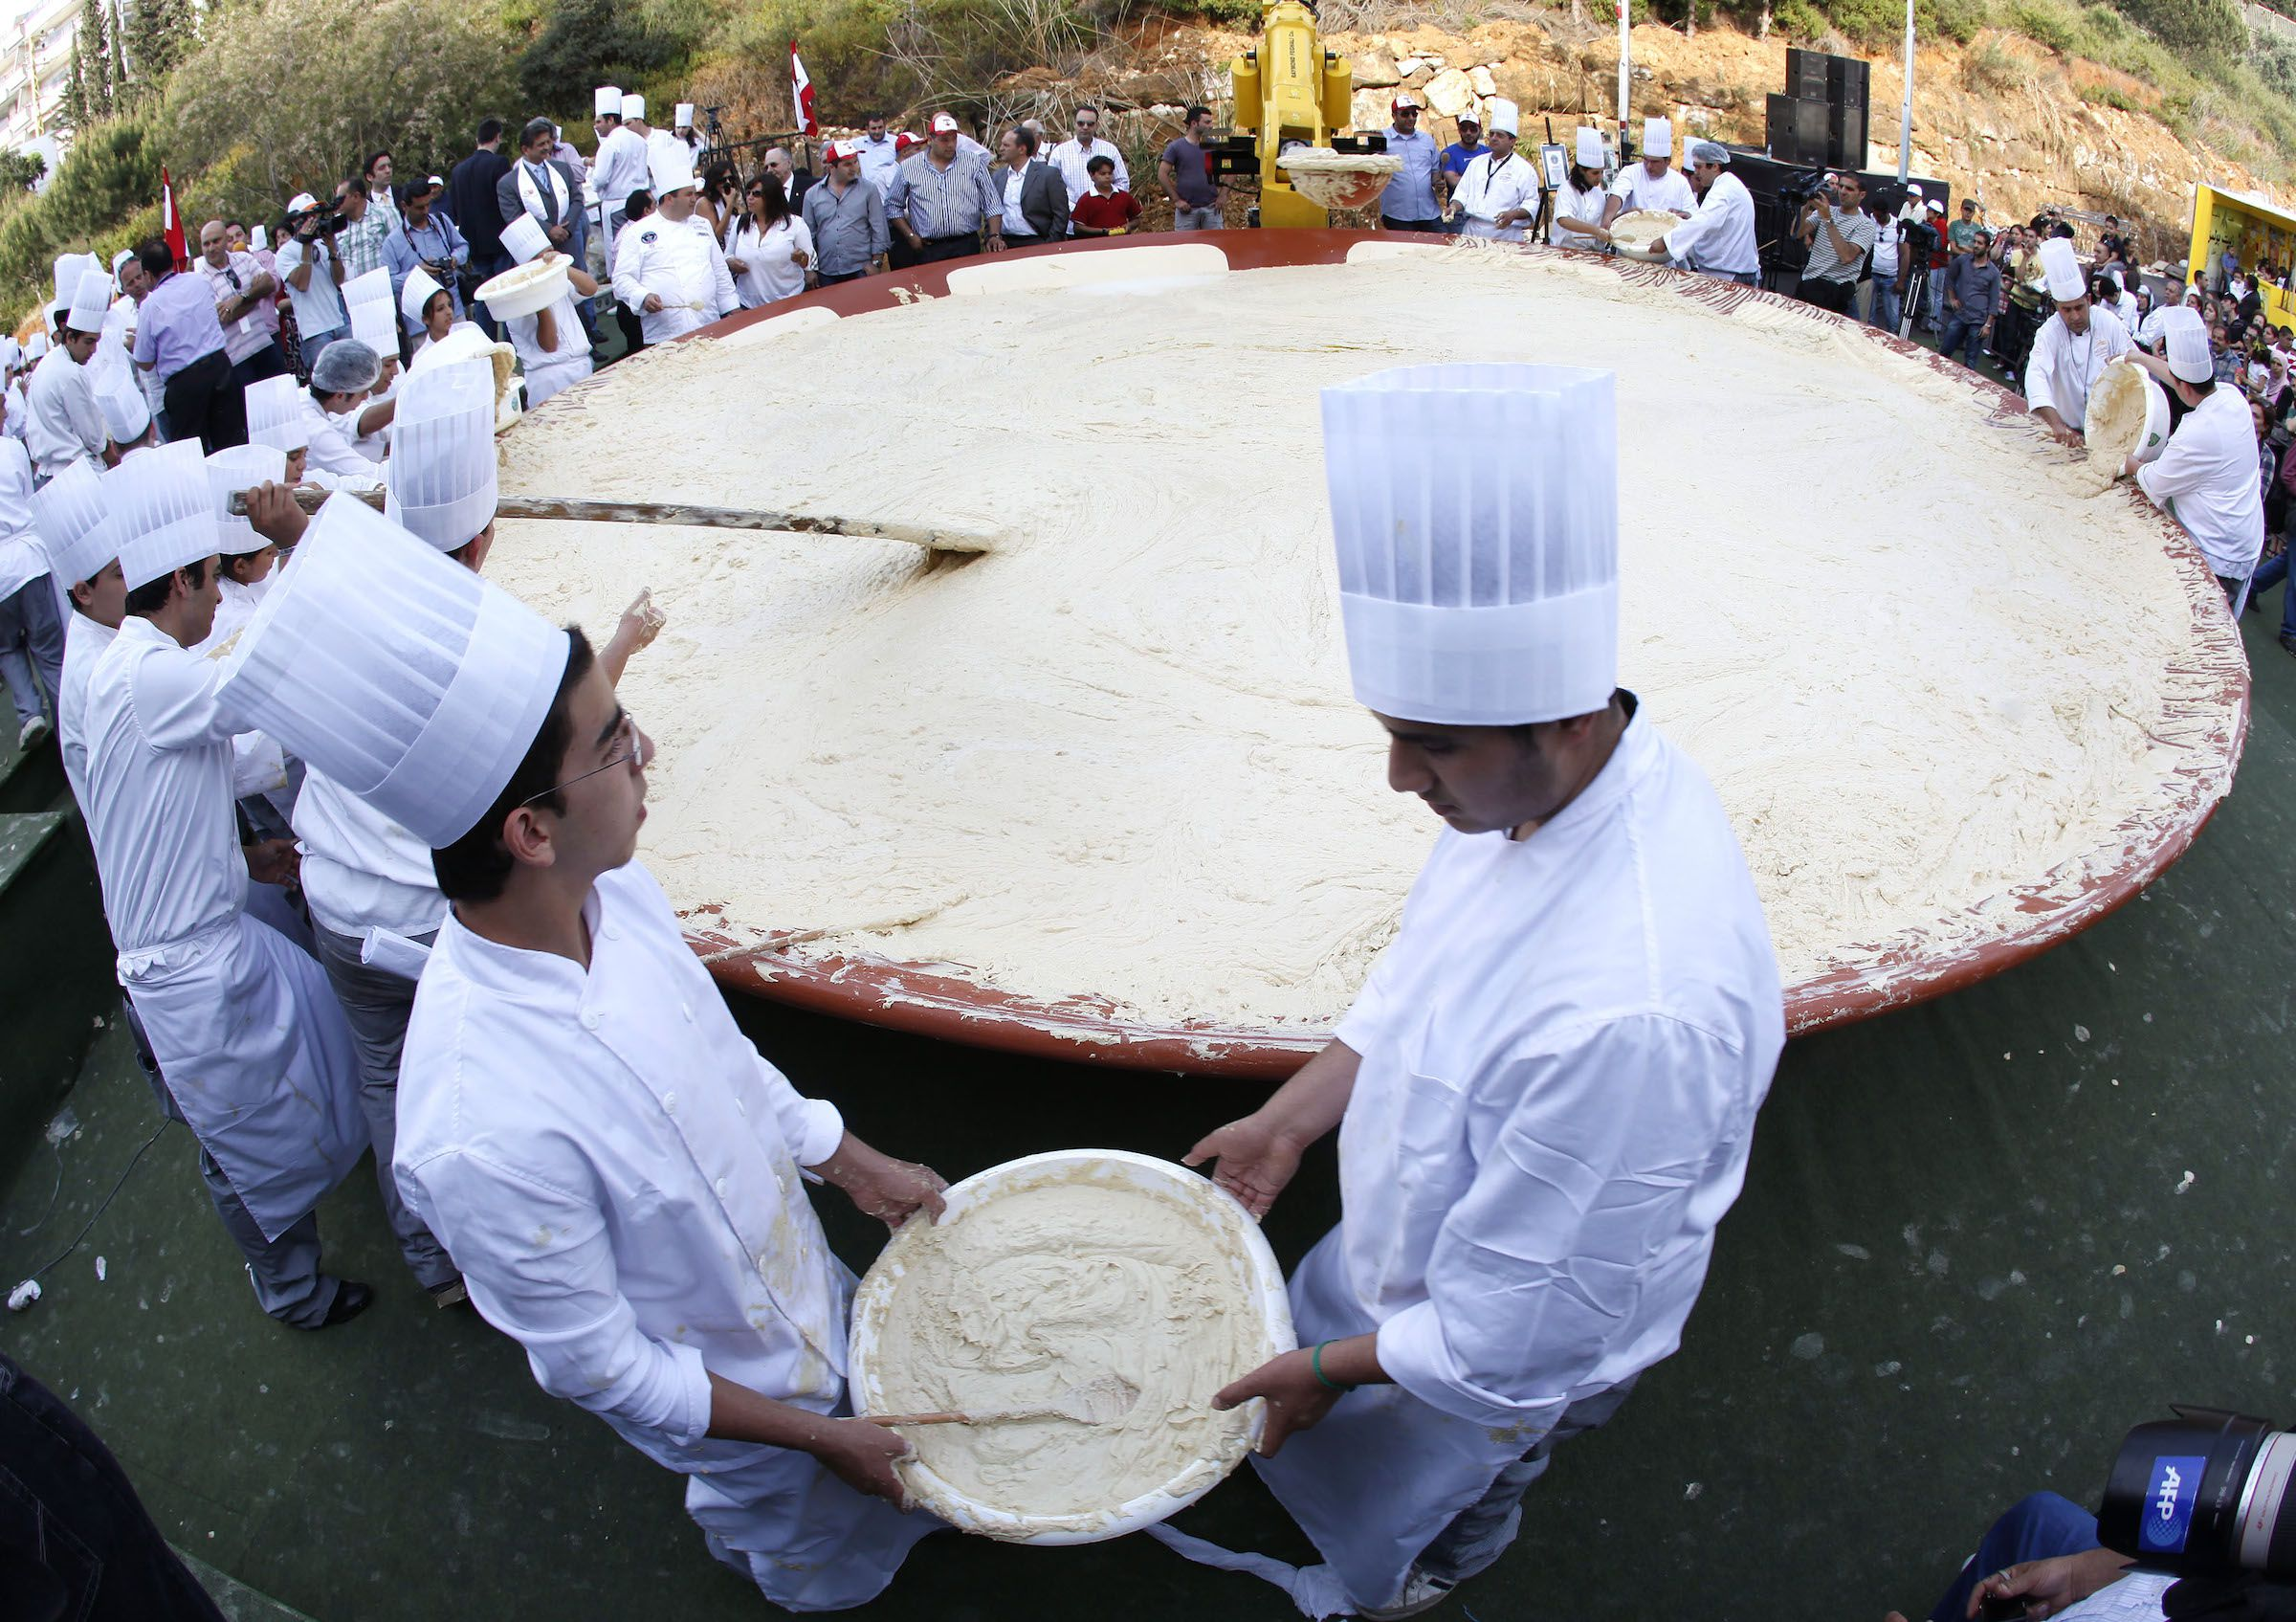 Lebanese chefs prepare a massive bowl of hummus, weighing 22,046 pounds or 10,452 kilograms the size of Lebanon in square kilometers, during a bid to break a record previously held by Israel and reclaim ownership over the popular Middle Eastern dish, in Fanar, east of Beirut, Lebanon, Saturday May 8, 2010. Some 300 Lebanese chefs prepared the huge hummus plate and doubled the record achieved by cooks in an Arab town near Jerusalem in January that weighed around four metric tons and broke a previous record held by Lebanon. A Guinness World Records adjudicator confirmed that Lebanon now holds the record.